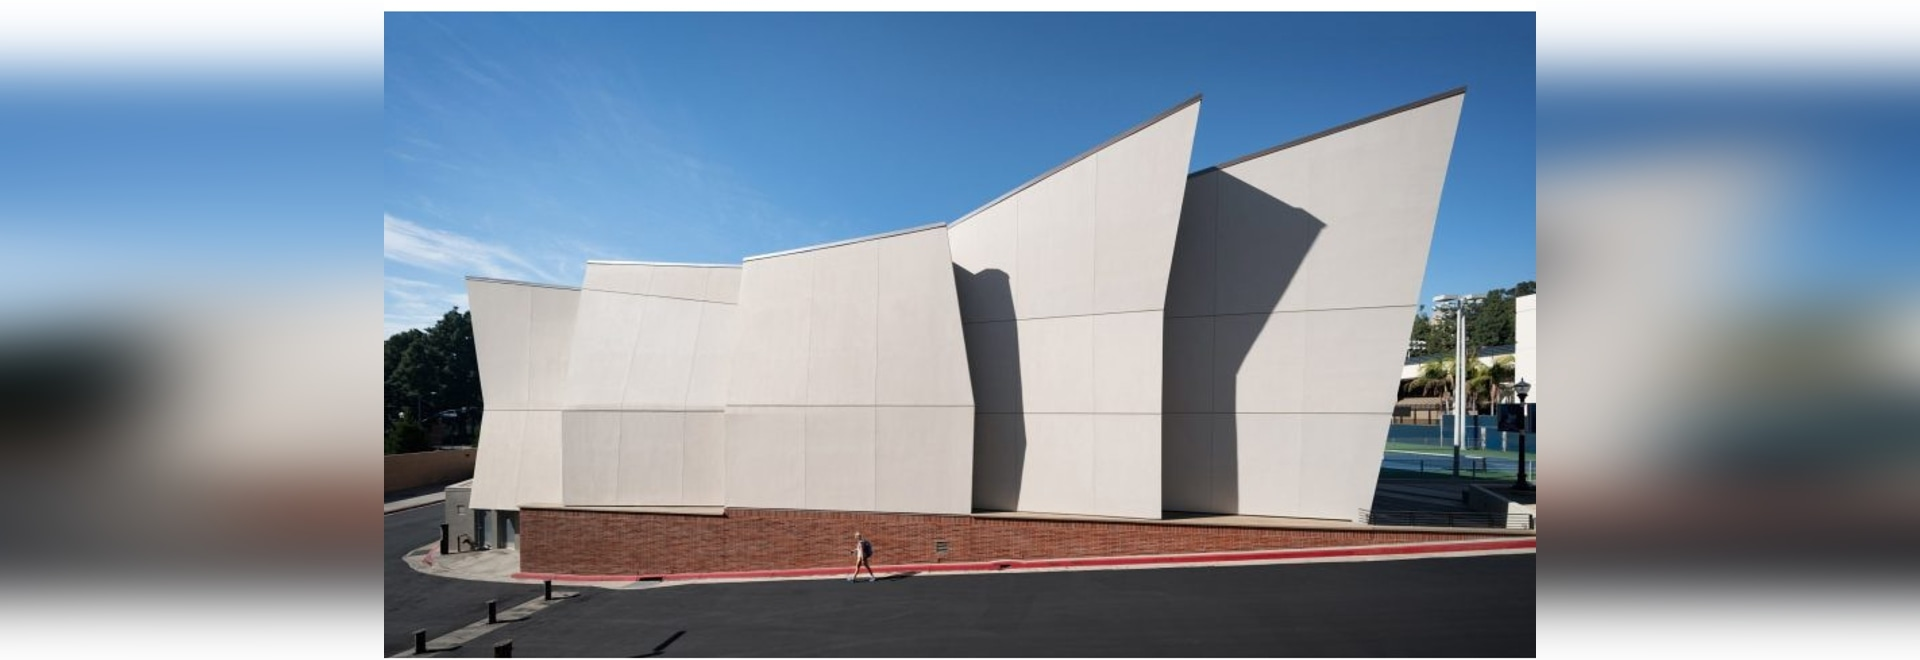 Kevin Daly Architects builds crinkled complex for UCLA's basketball teams